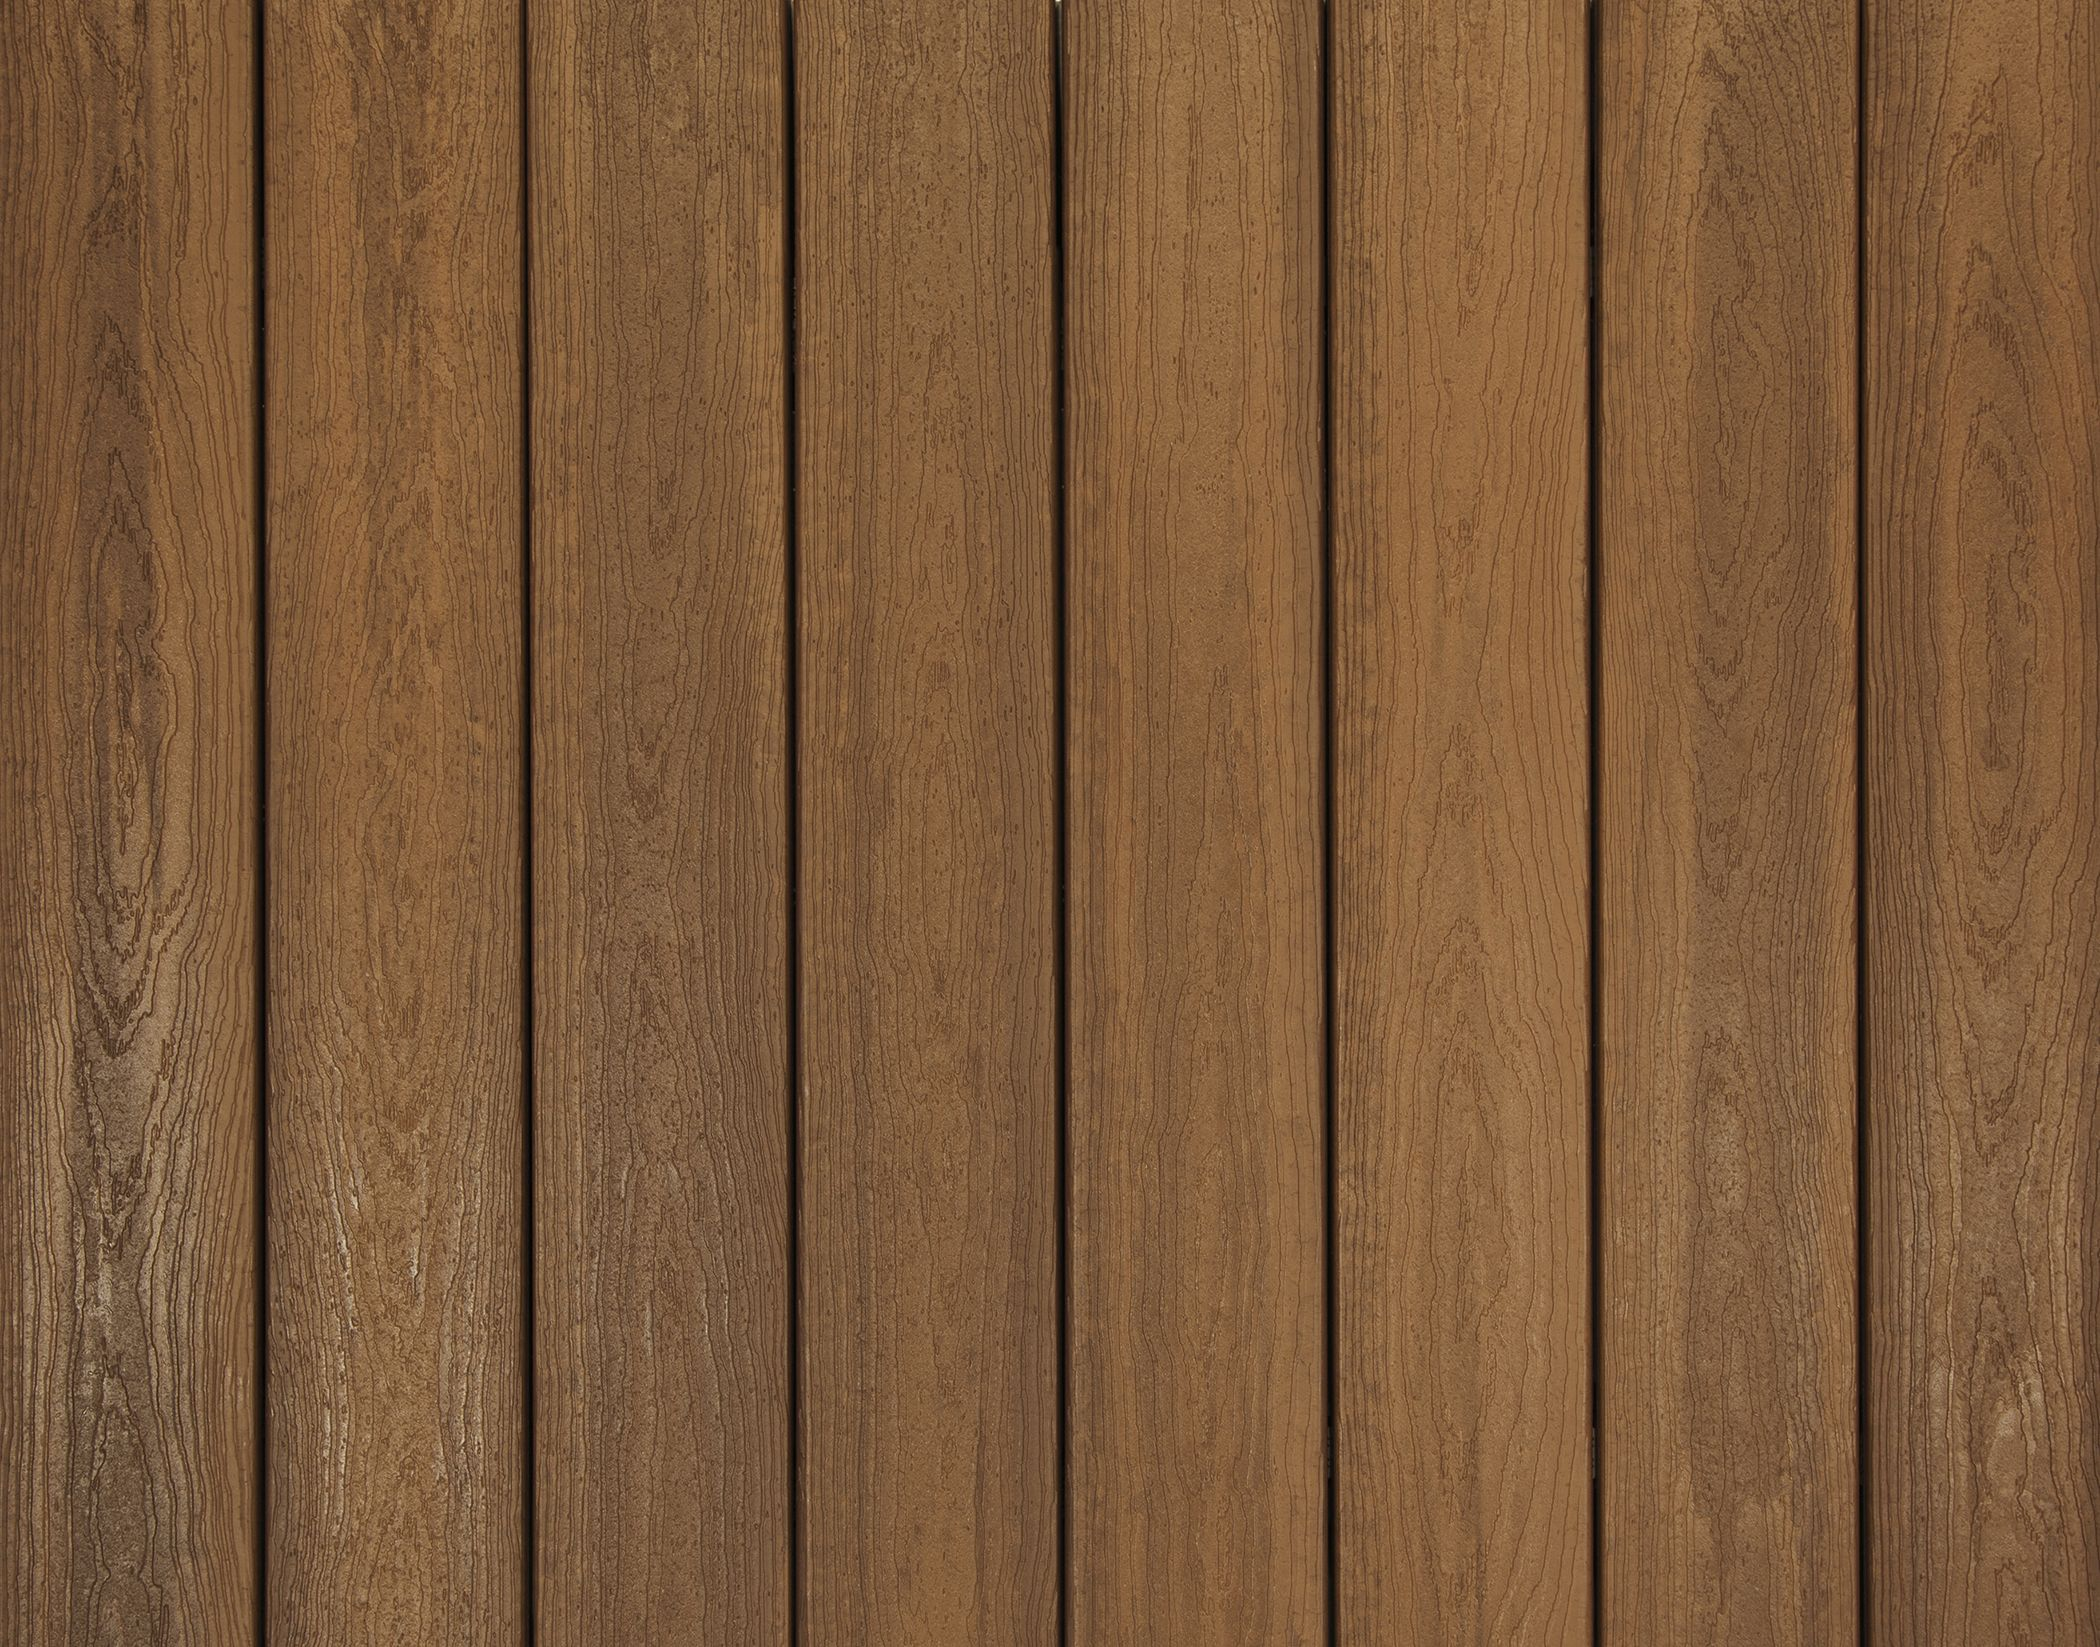 It Looks Like Wood But It S Composite Envision Inspiration Composite Deck Boards In T Composite Decking Decking Material Composite Composite Decking Boards